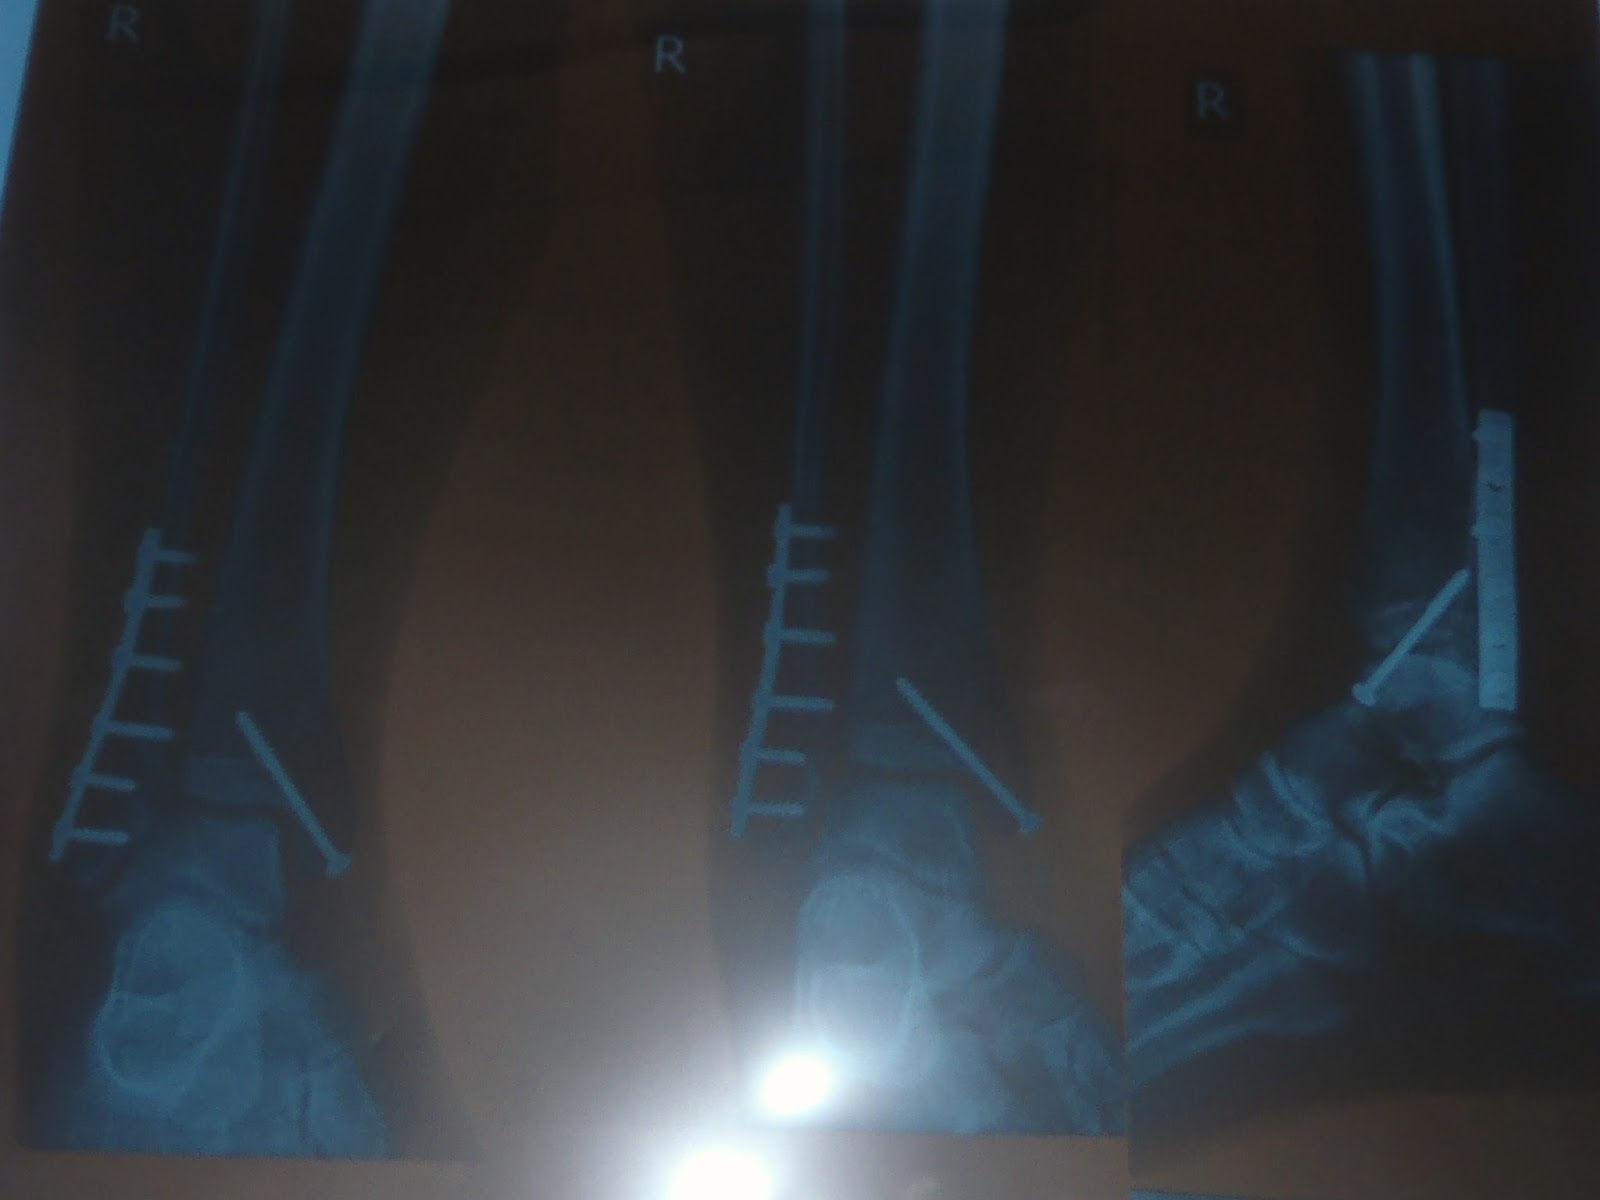 Broken Ankle Xrays in Thailand from Full Moon Party